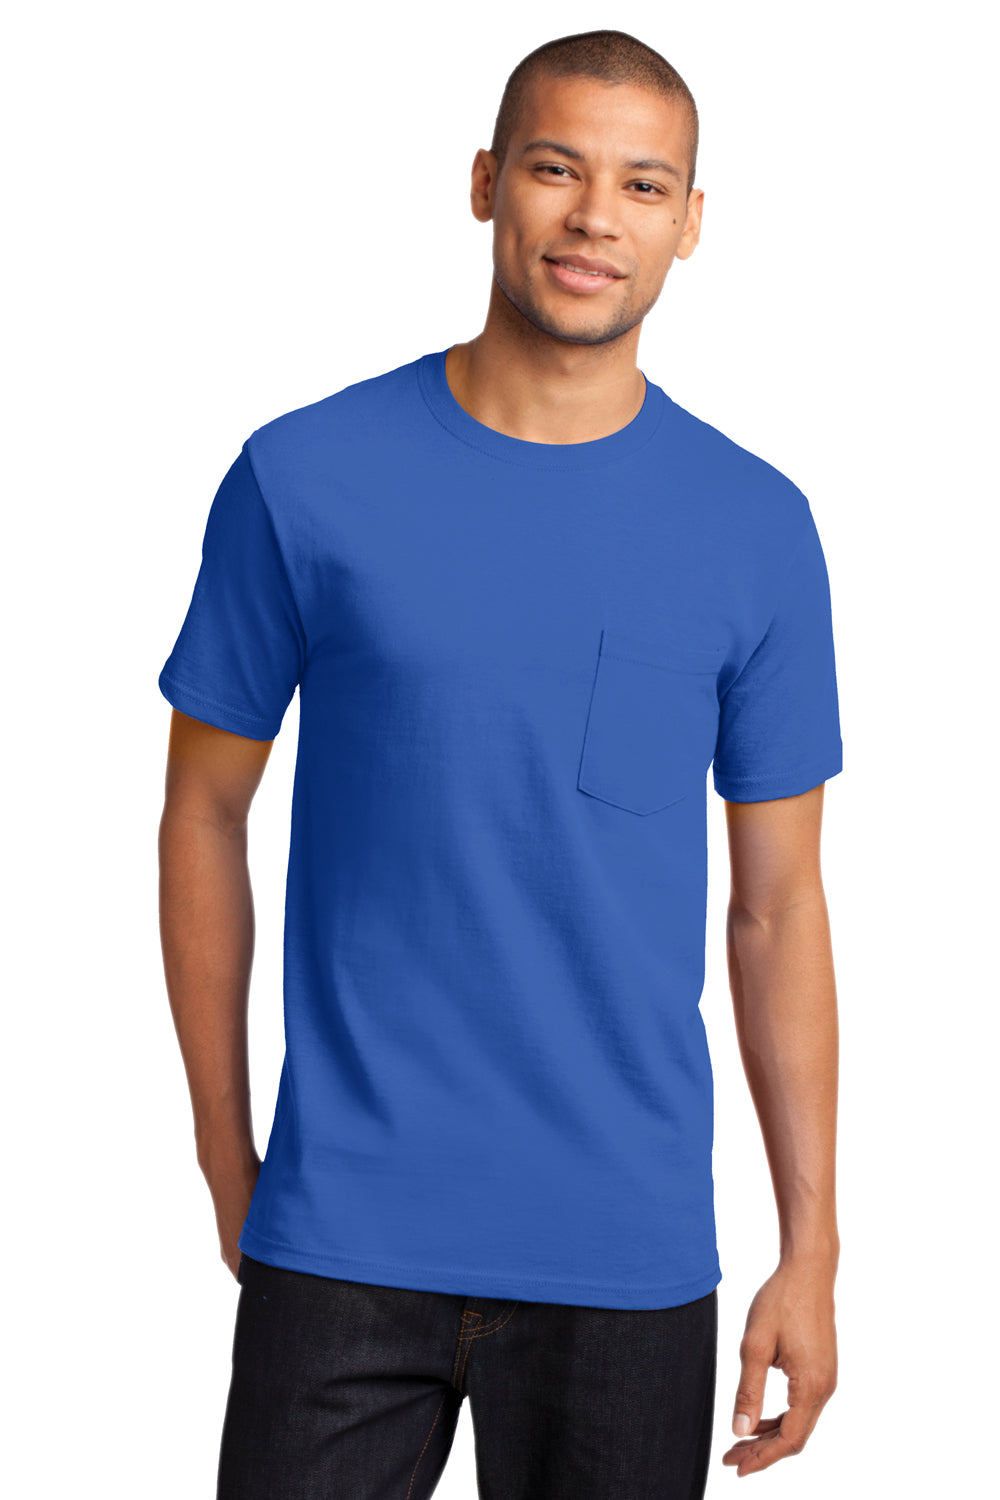 Port & Company PC61P Mens Essential Short Sleeve Crewneck T-Shirt w/ Pocket Royal Blue Front